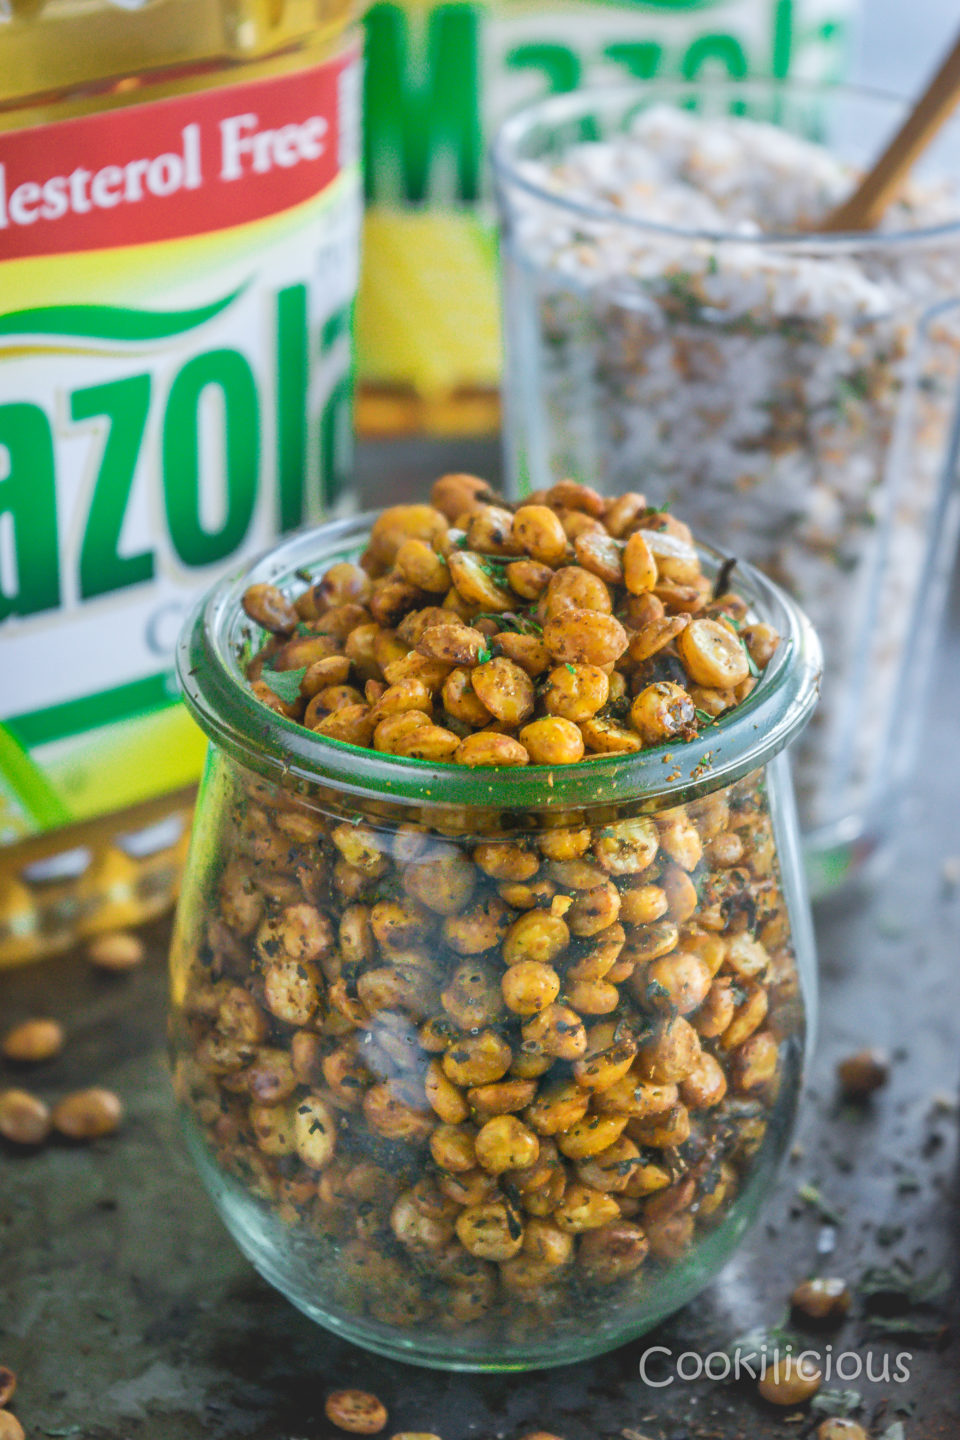 front shot of a jar filed with Crispy Vegan Split Peas with Mazola corn oil bottle in the background